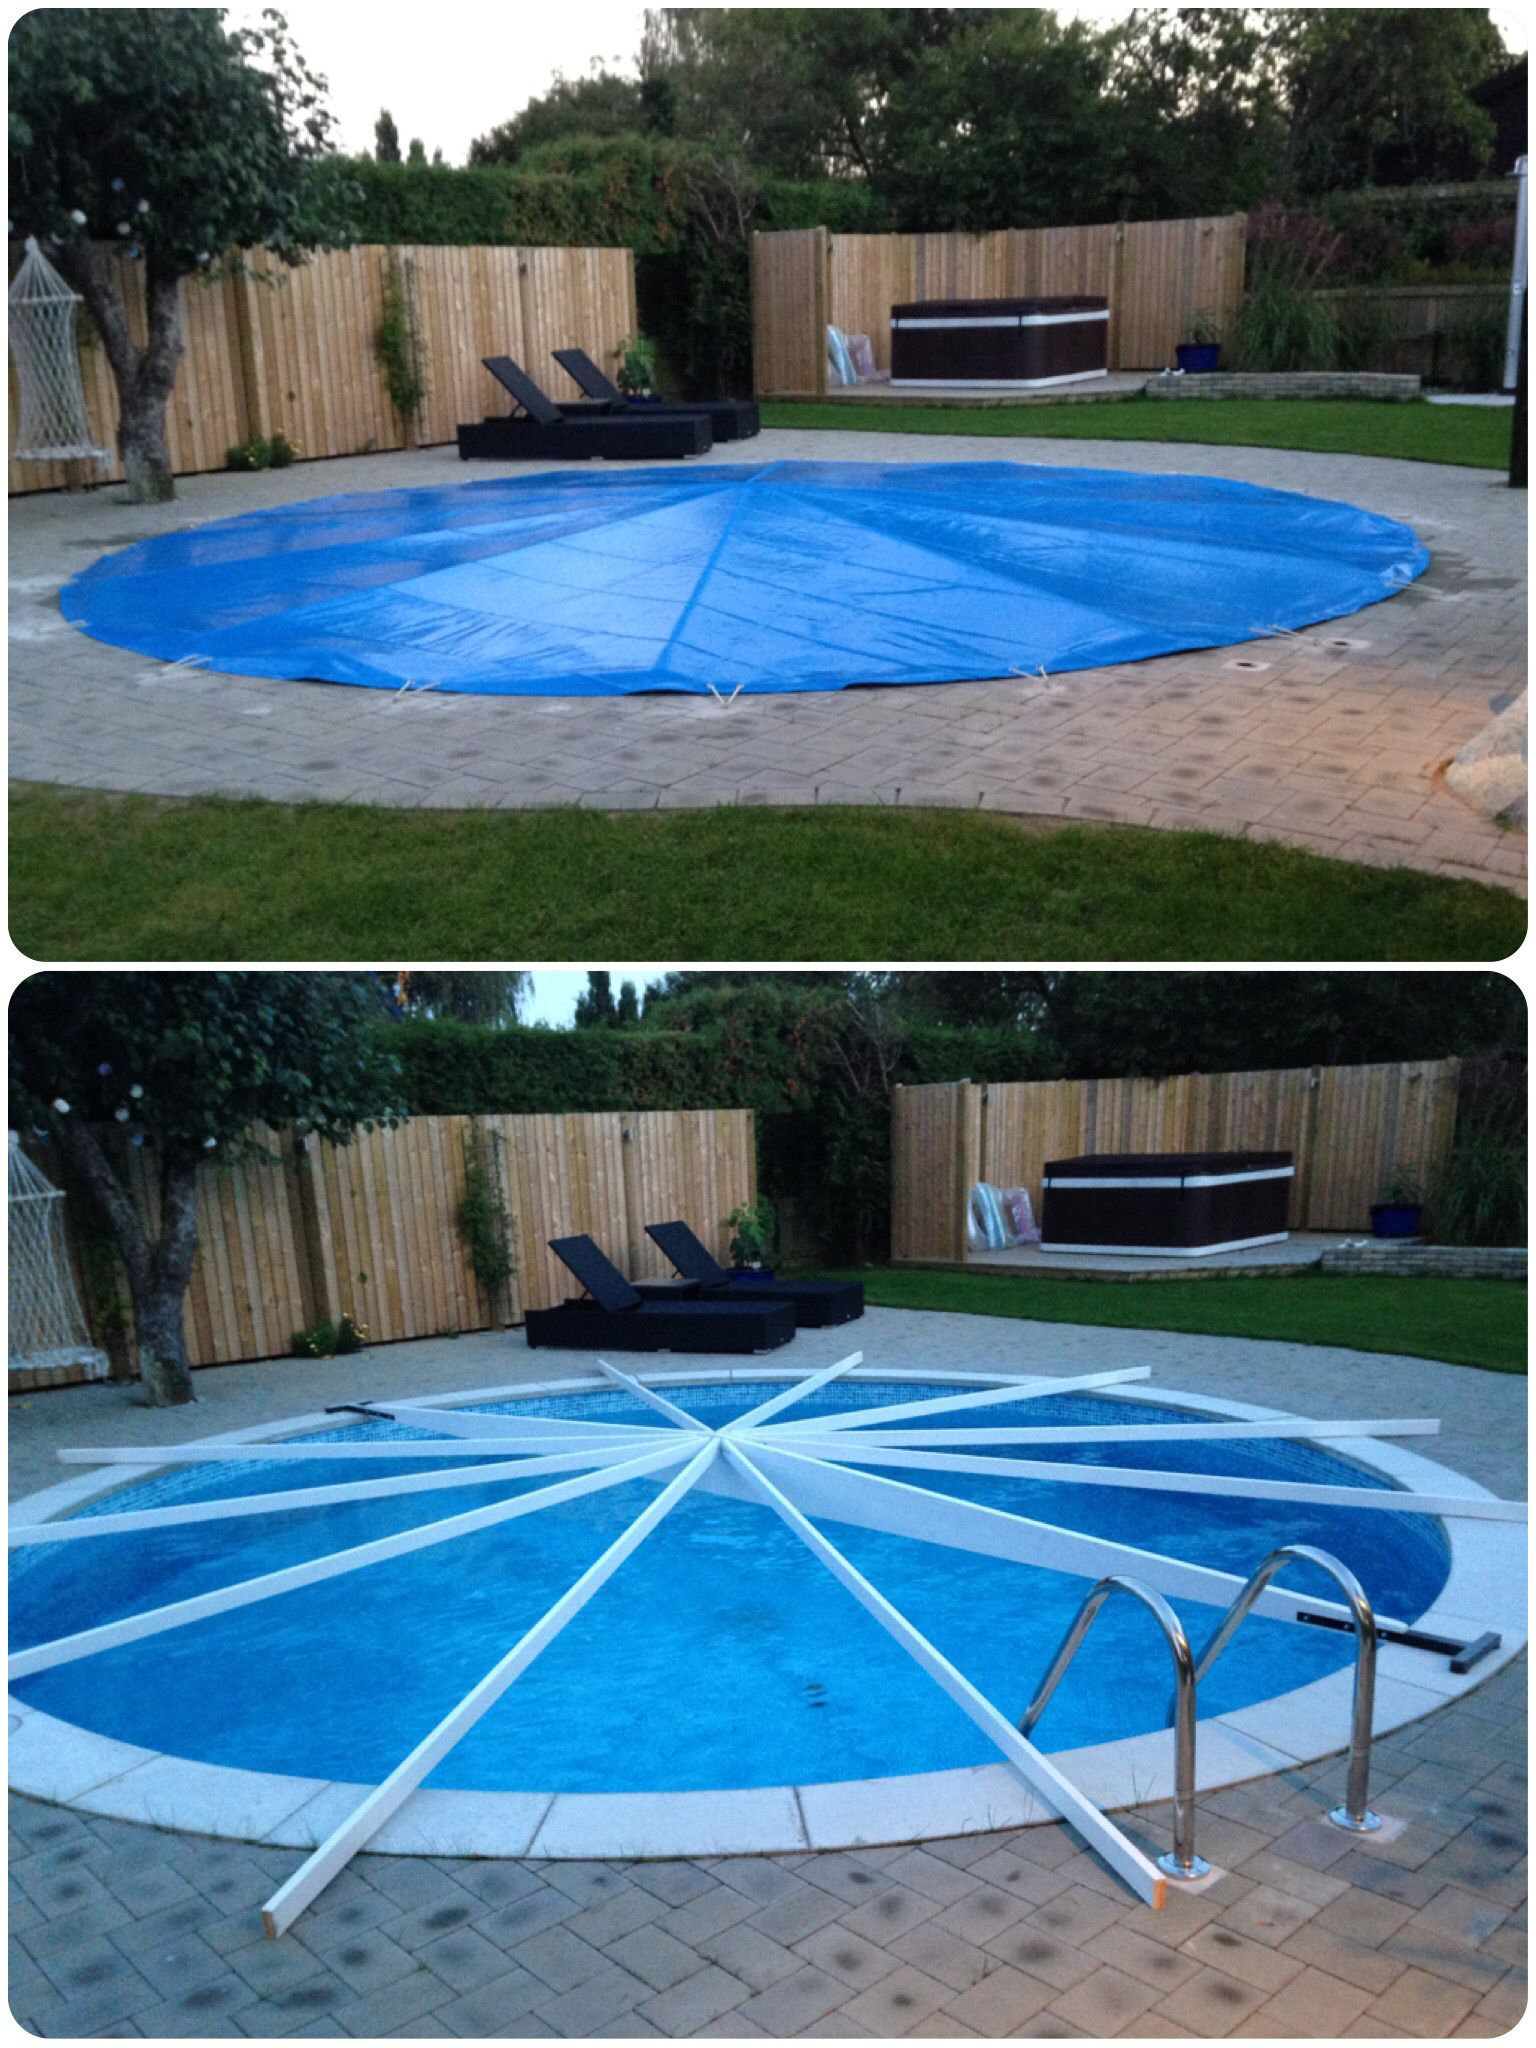 Diy Poolcover To Get Rid Of Rain And Melting Snow - Kleinen Pool Selber Bauen